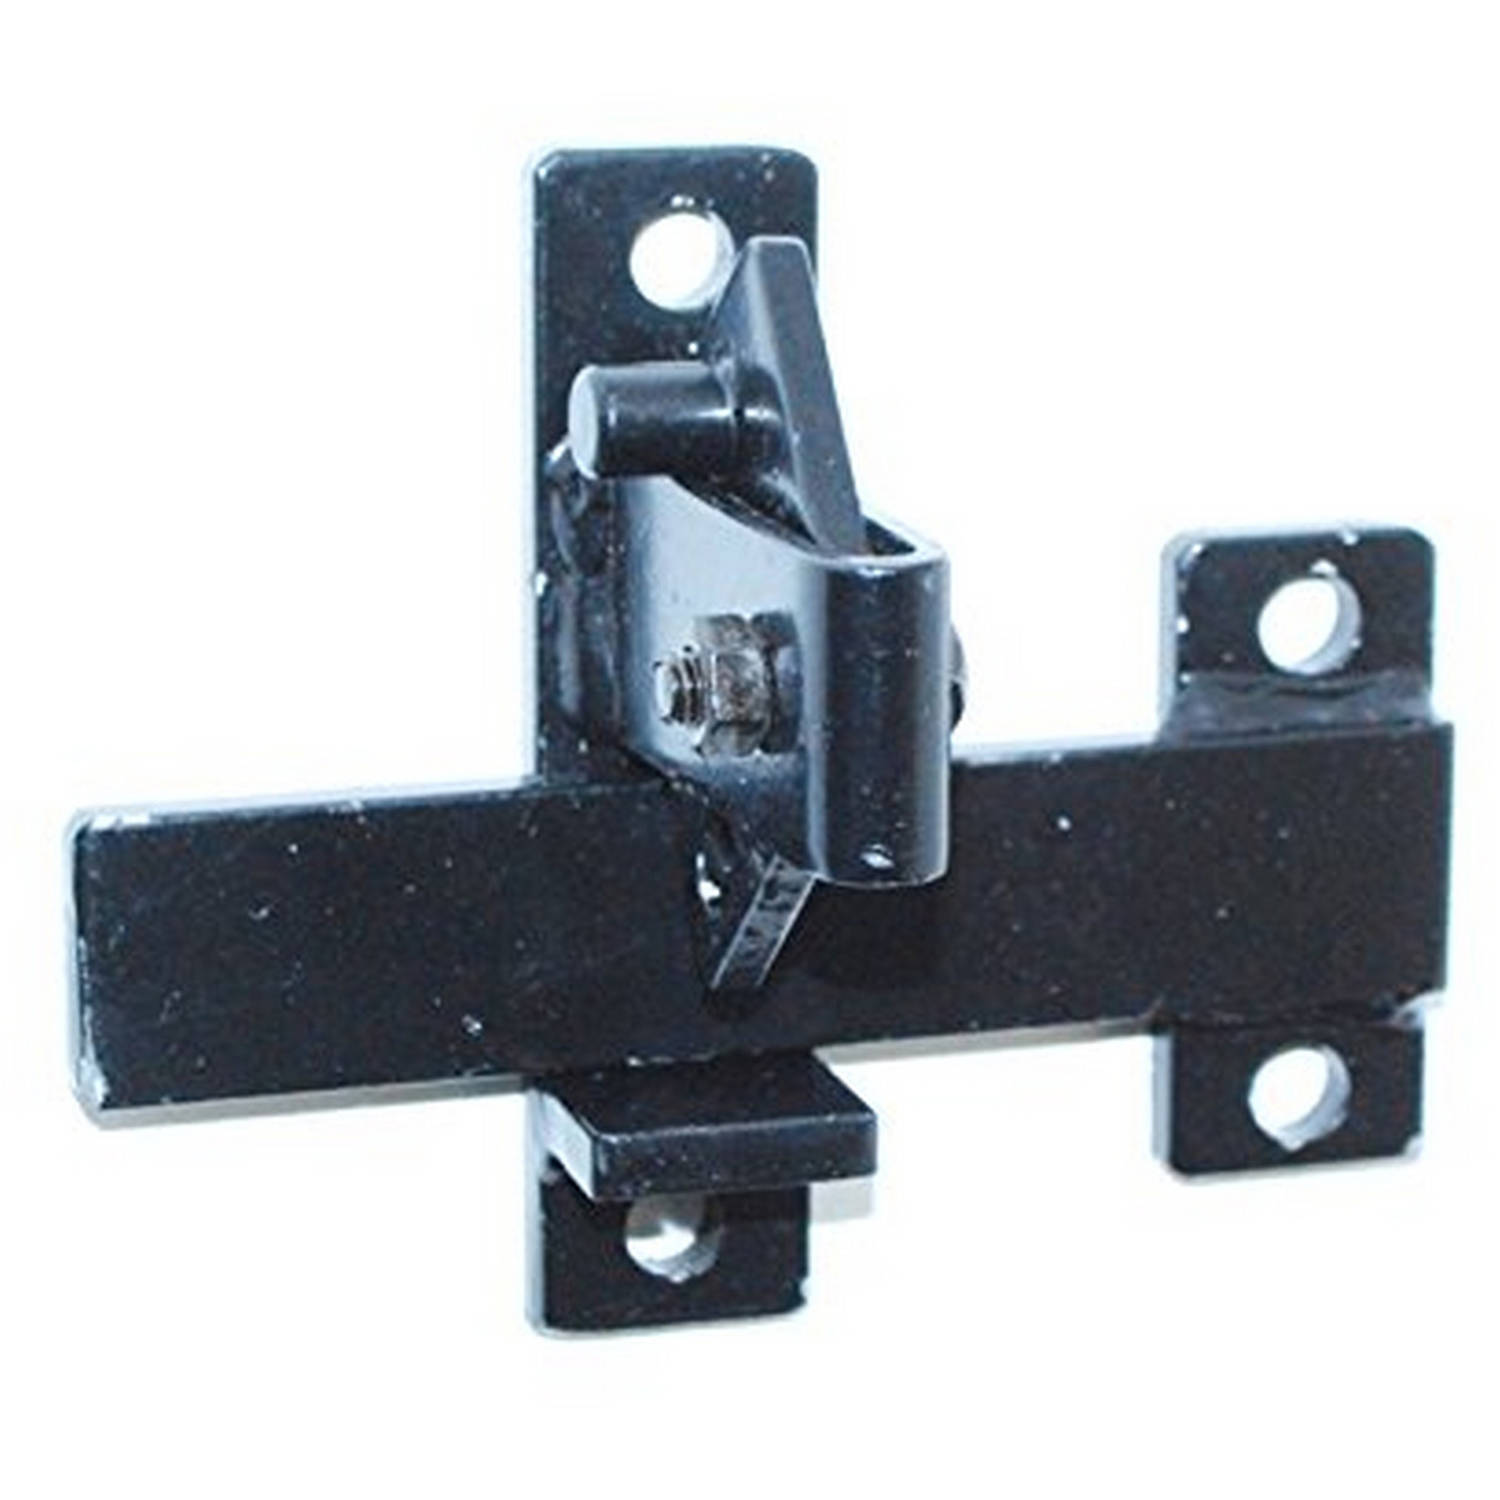 Door Flip Latch aleko lm191 universal gate door flip latch - walmart